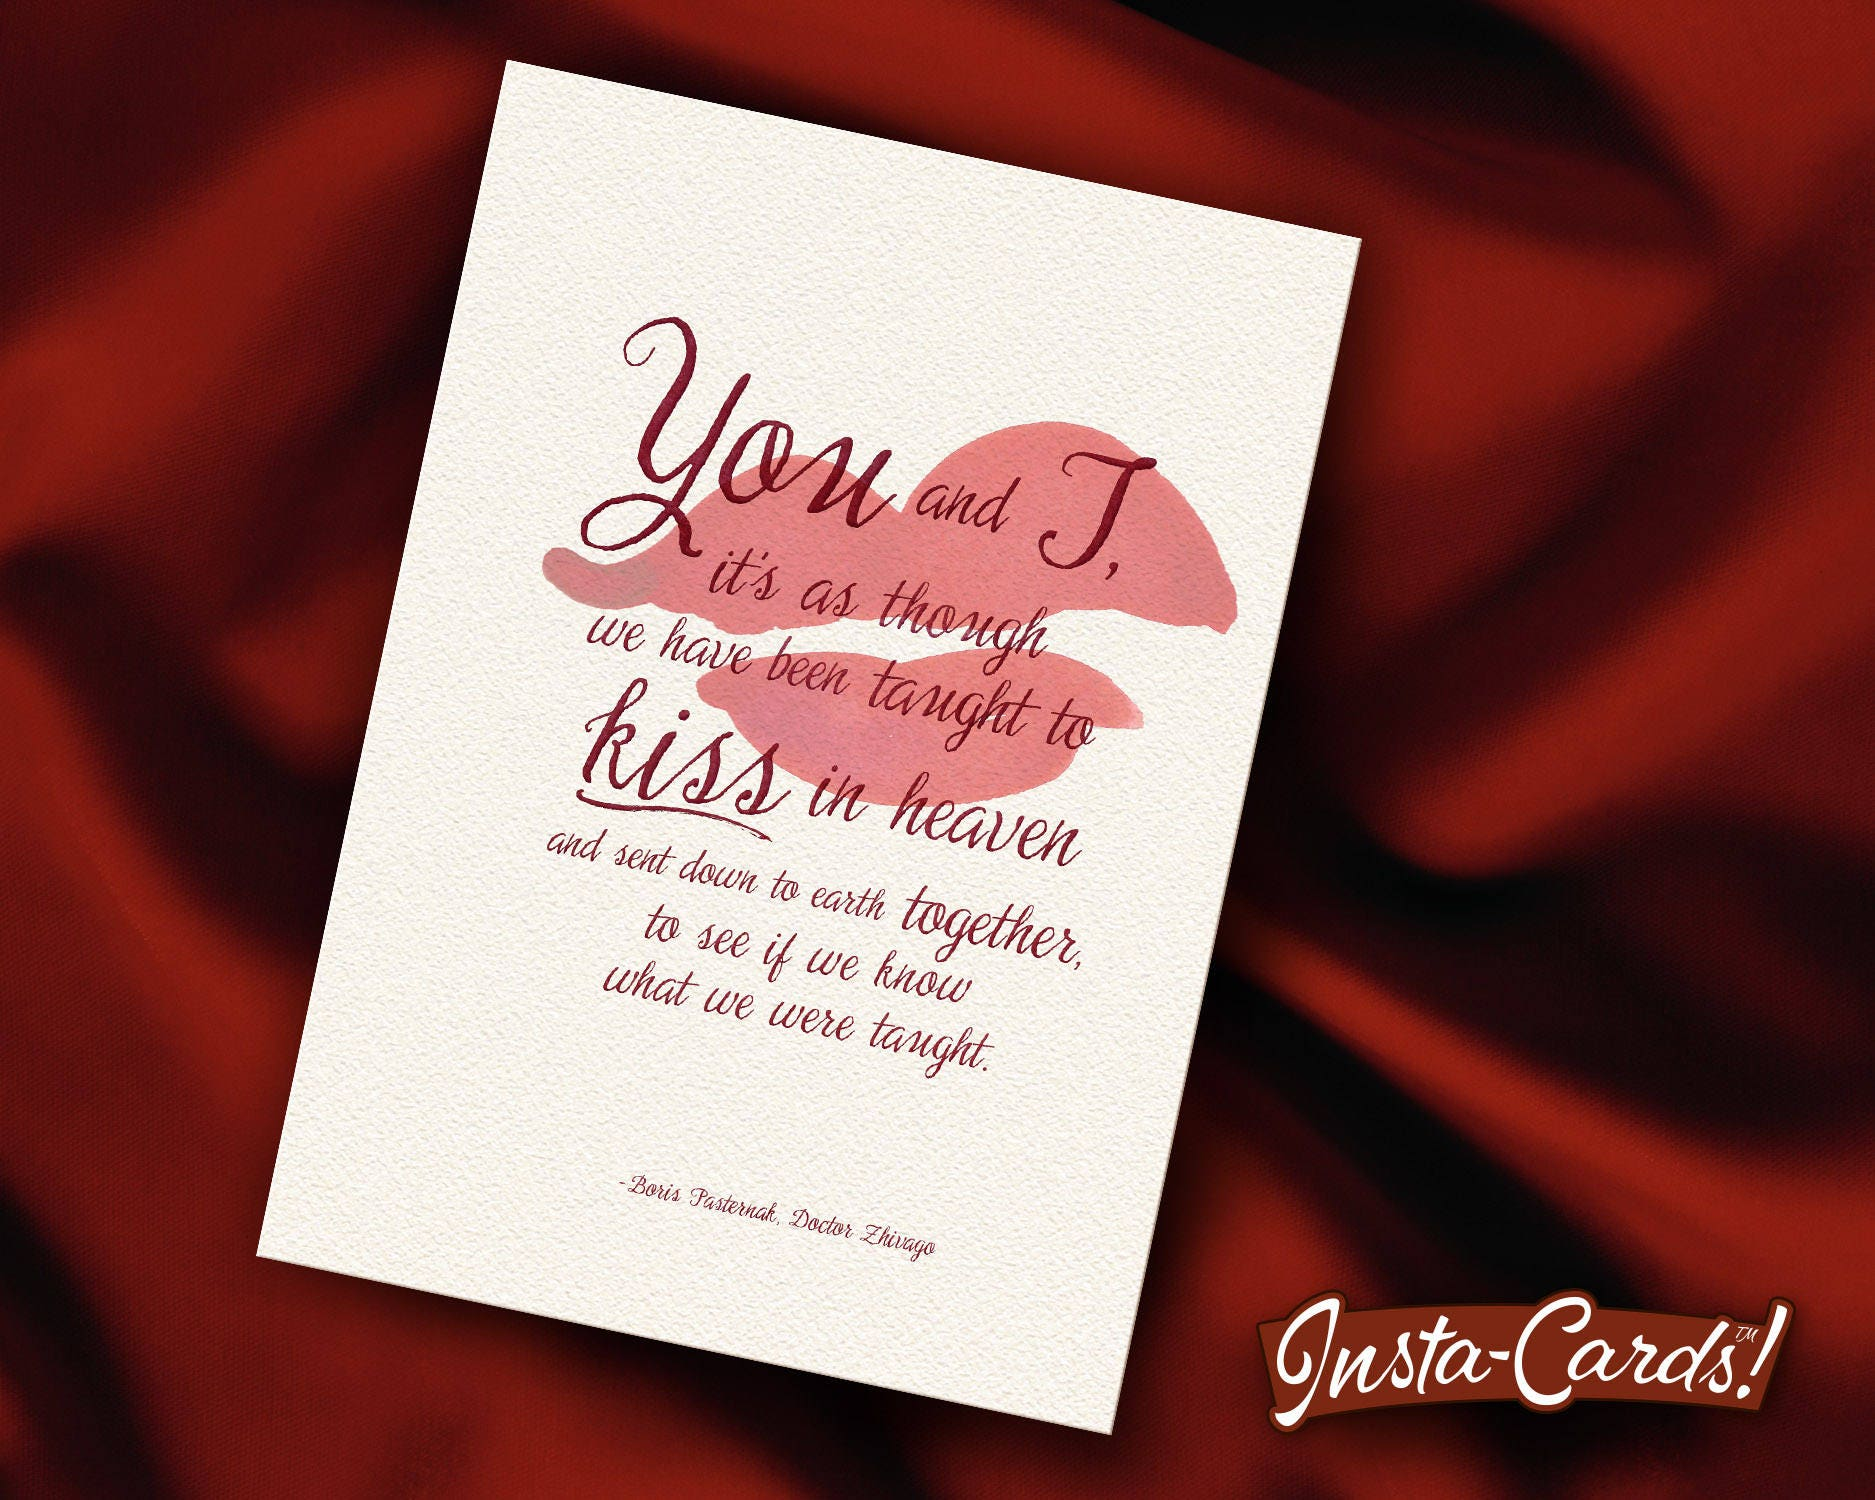 Insta-Card Printable Love Card Taught to Kiss